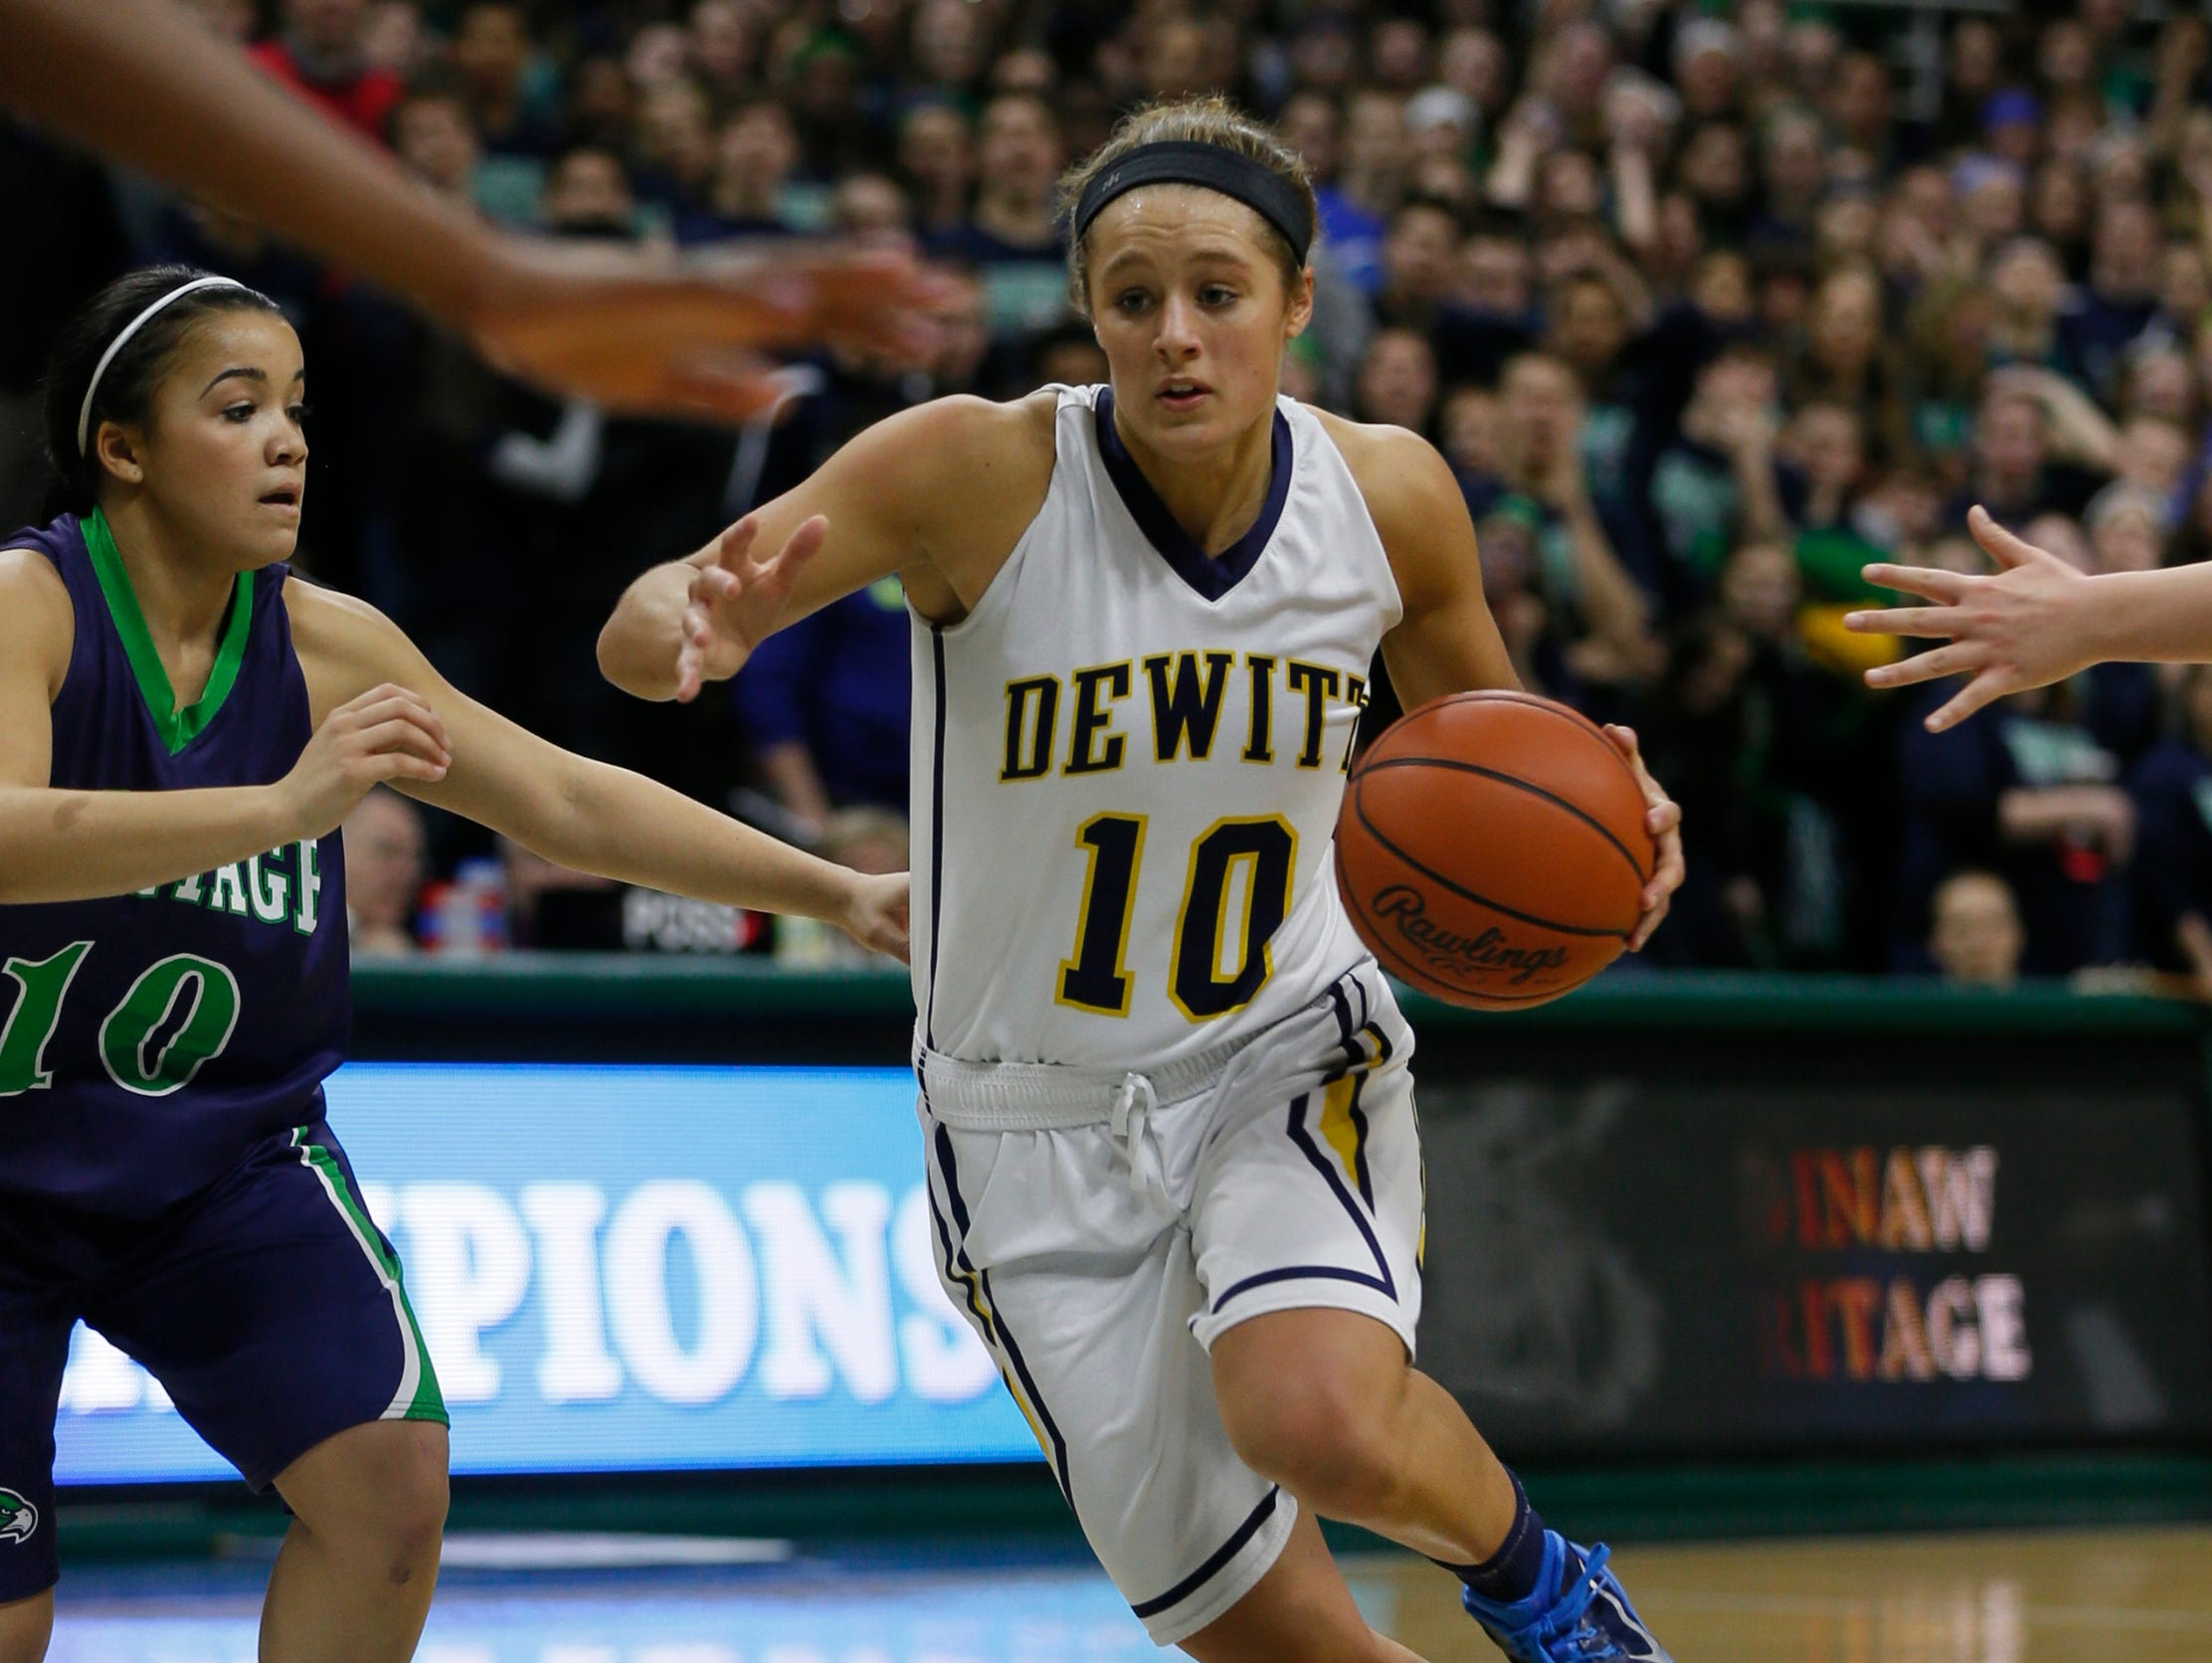 Dewitt's Claudia Reid drive to the basket in the second half of their 44-36 win over Saginaw Heritage in MHSAA Class A semi final game on Friday, March 19, 2015 in East Lansing.